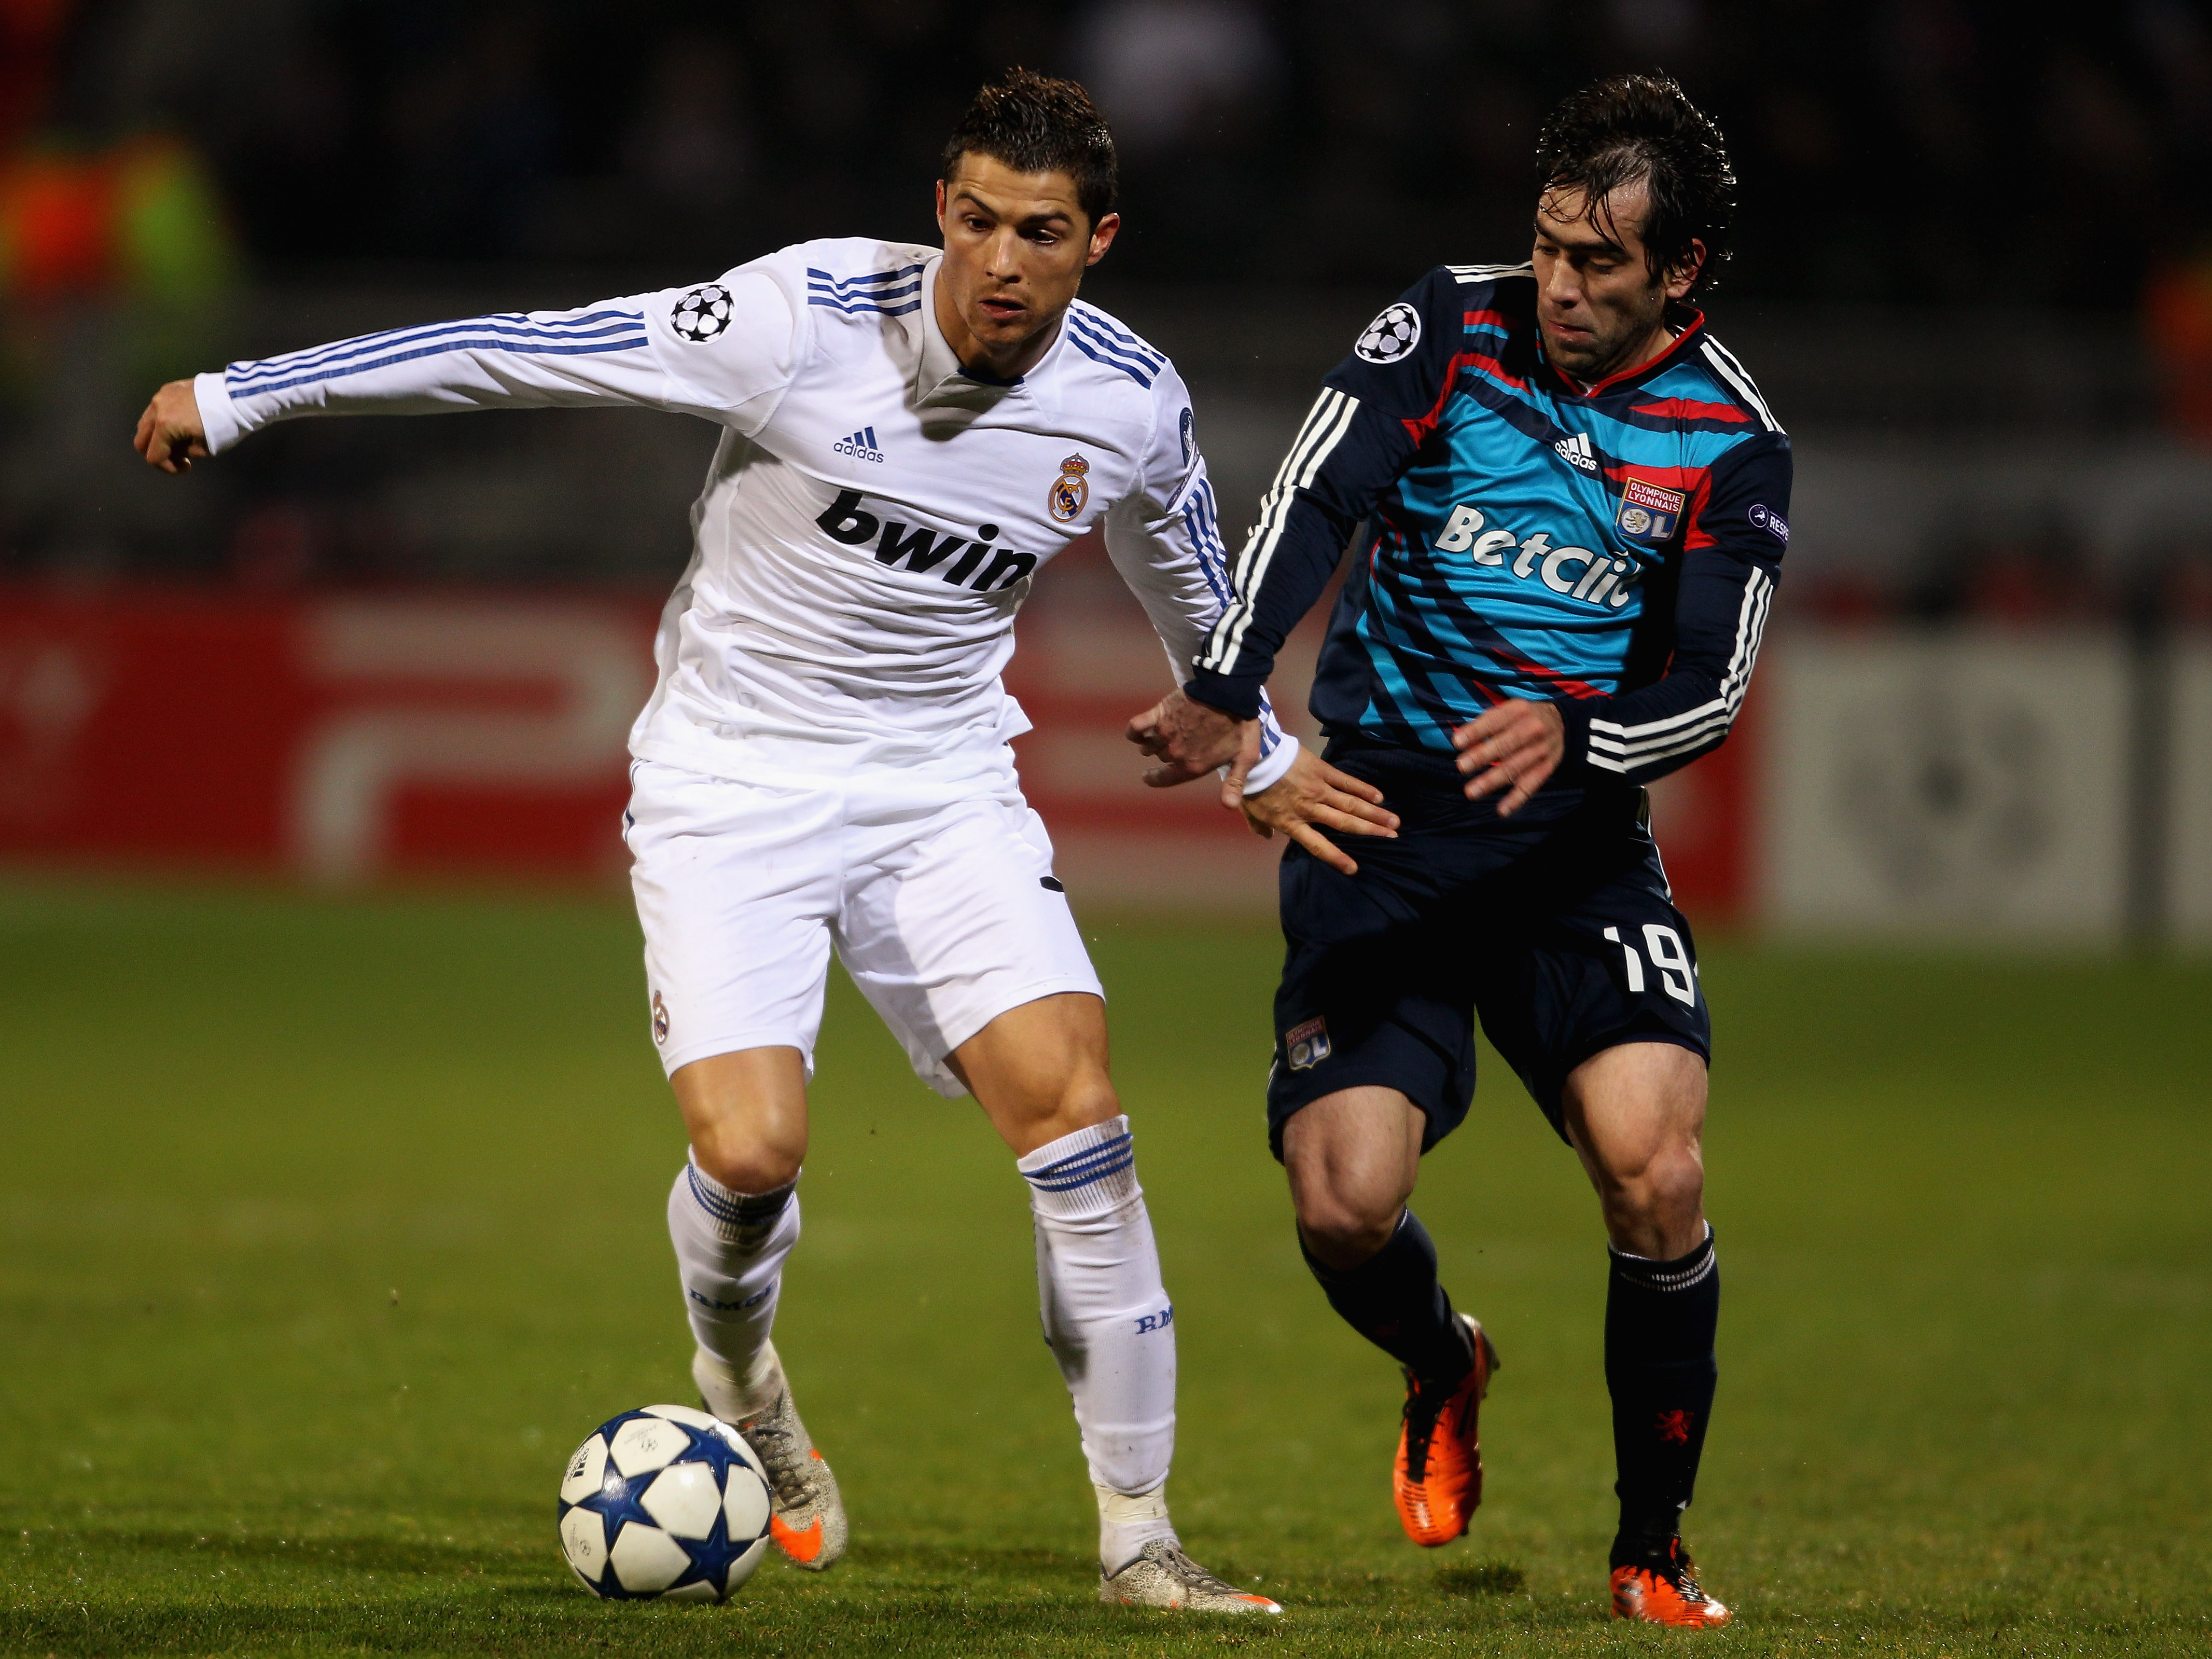 LYON, FRANCE - FEBRUARY 22:  Cristiano Ronaldo of Real Madrid (L) in action with Cesar Delgado of Lyon during the Champions League match between Lyon and Real Madrid at Stade Gerland on February 22, 2011 in Lyon, France.  (Photo by Scott Heavey/Getty Imag